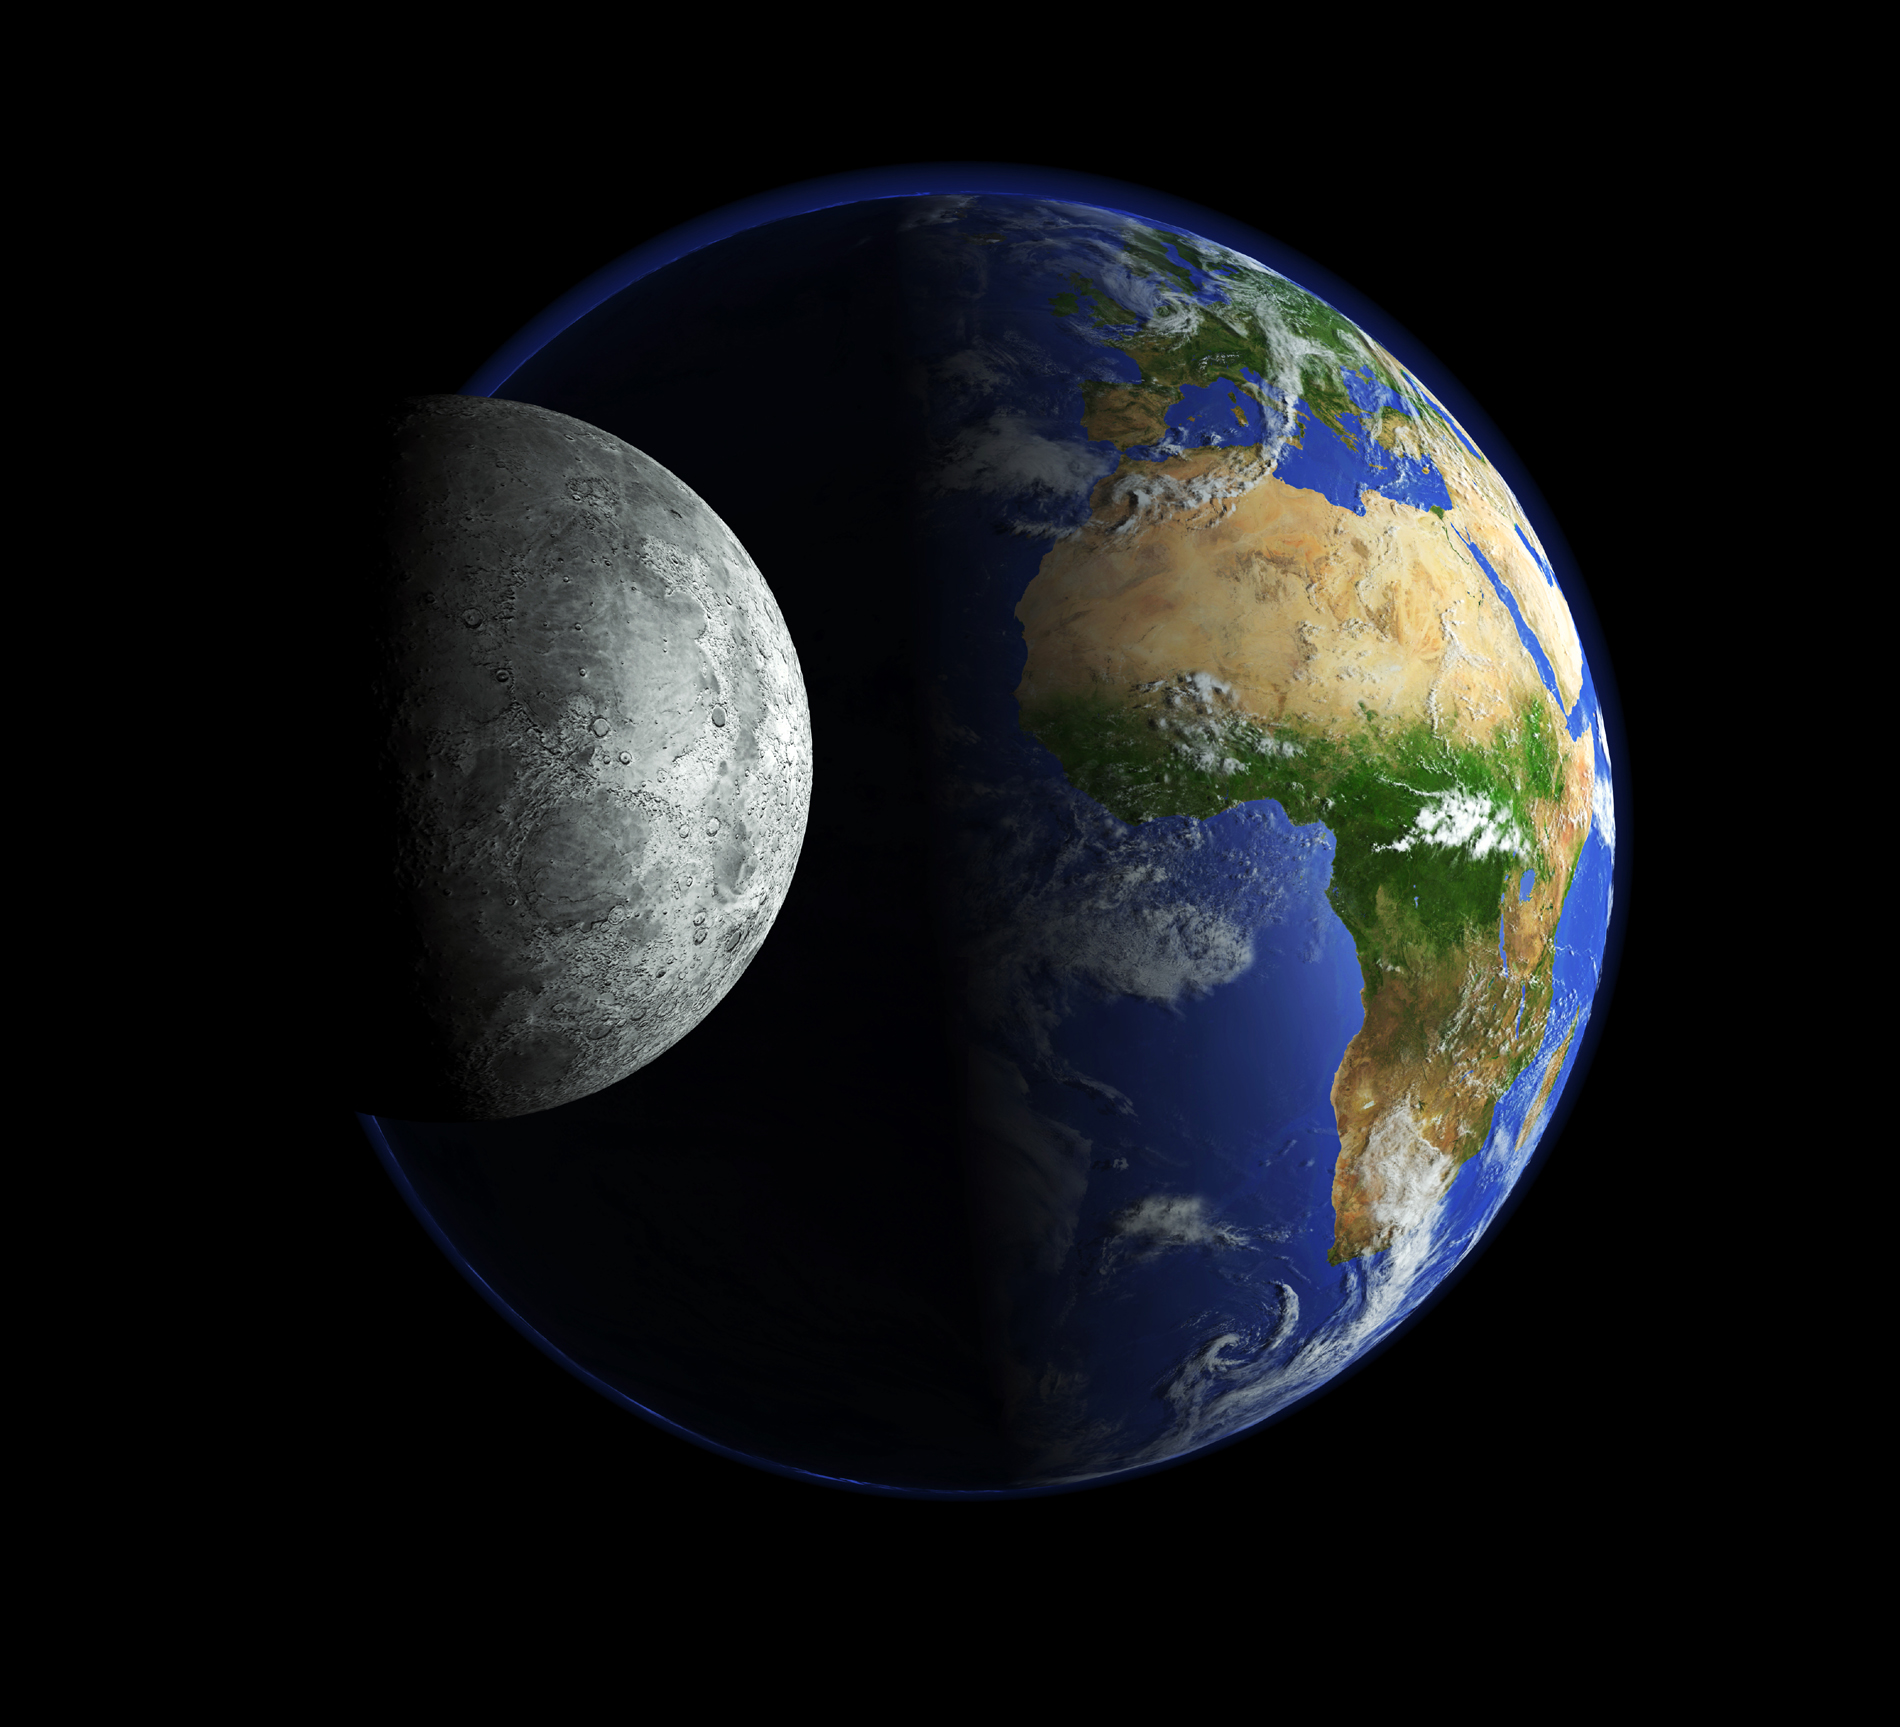 Grey and Blue Planet Moon 52661